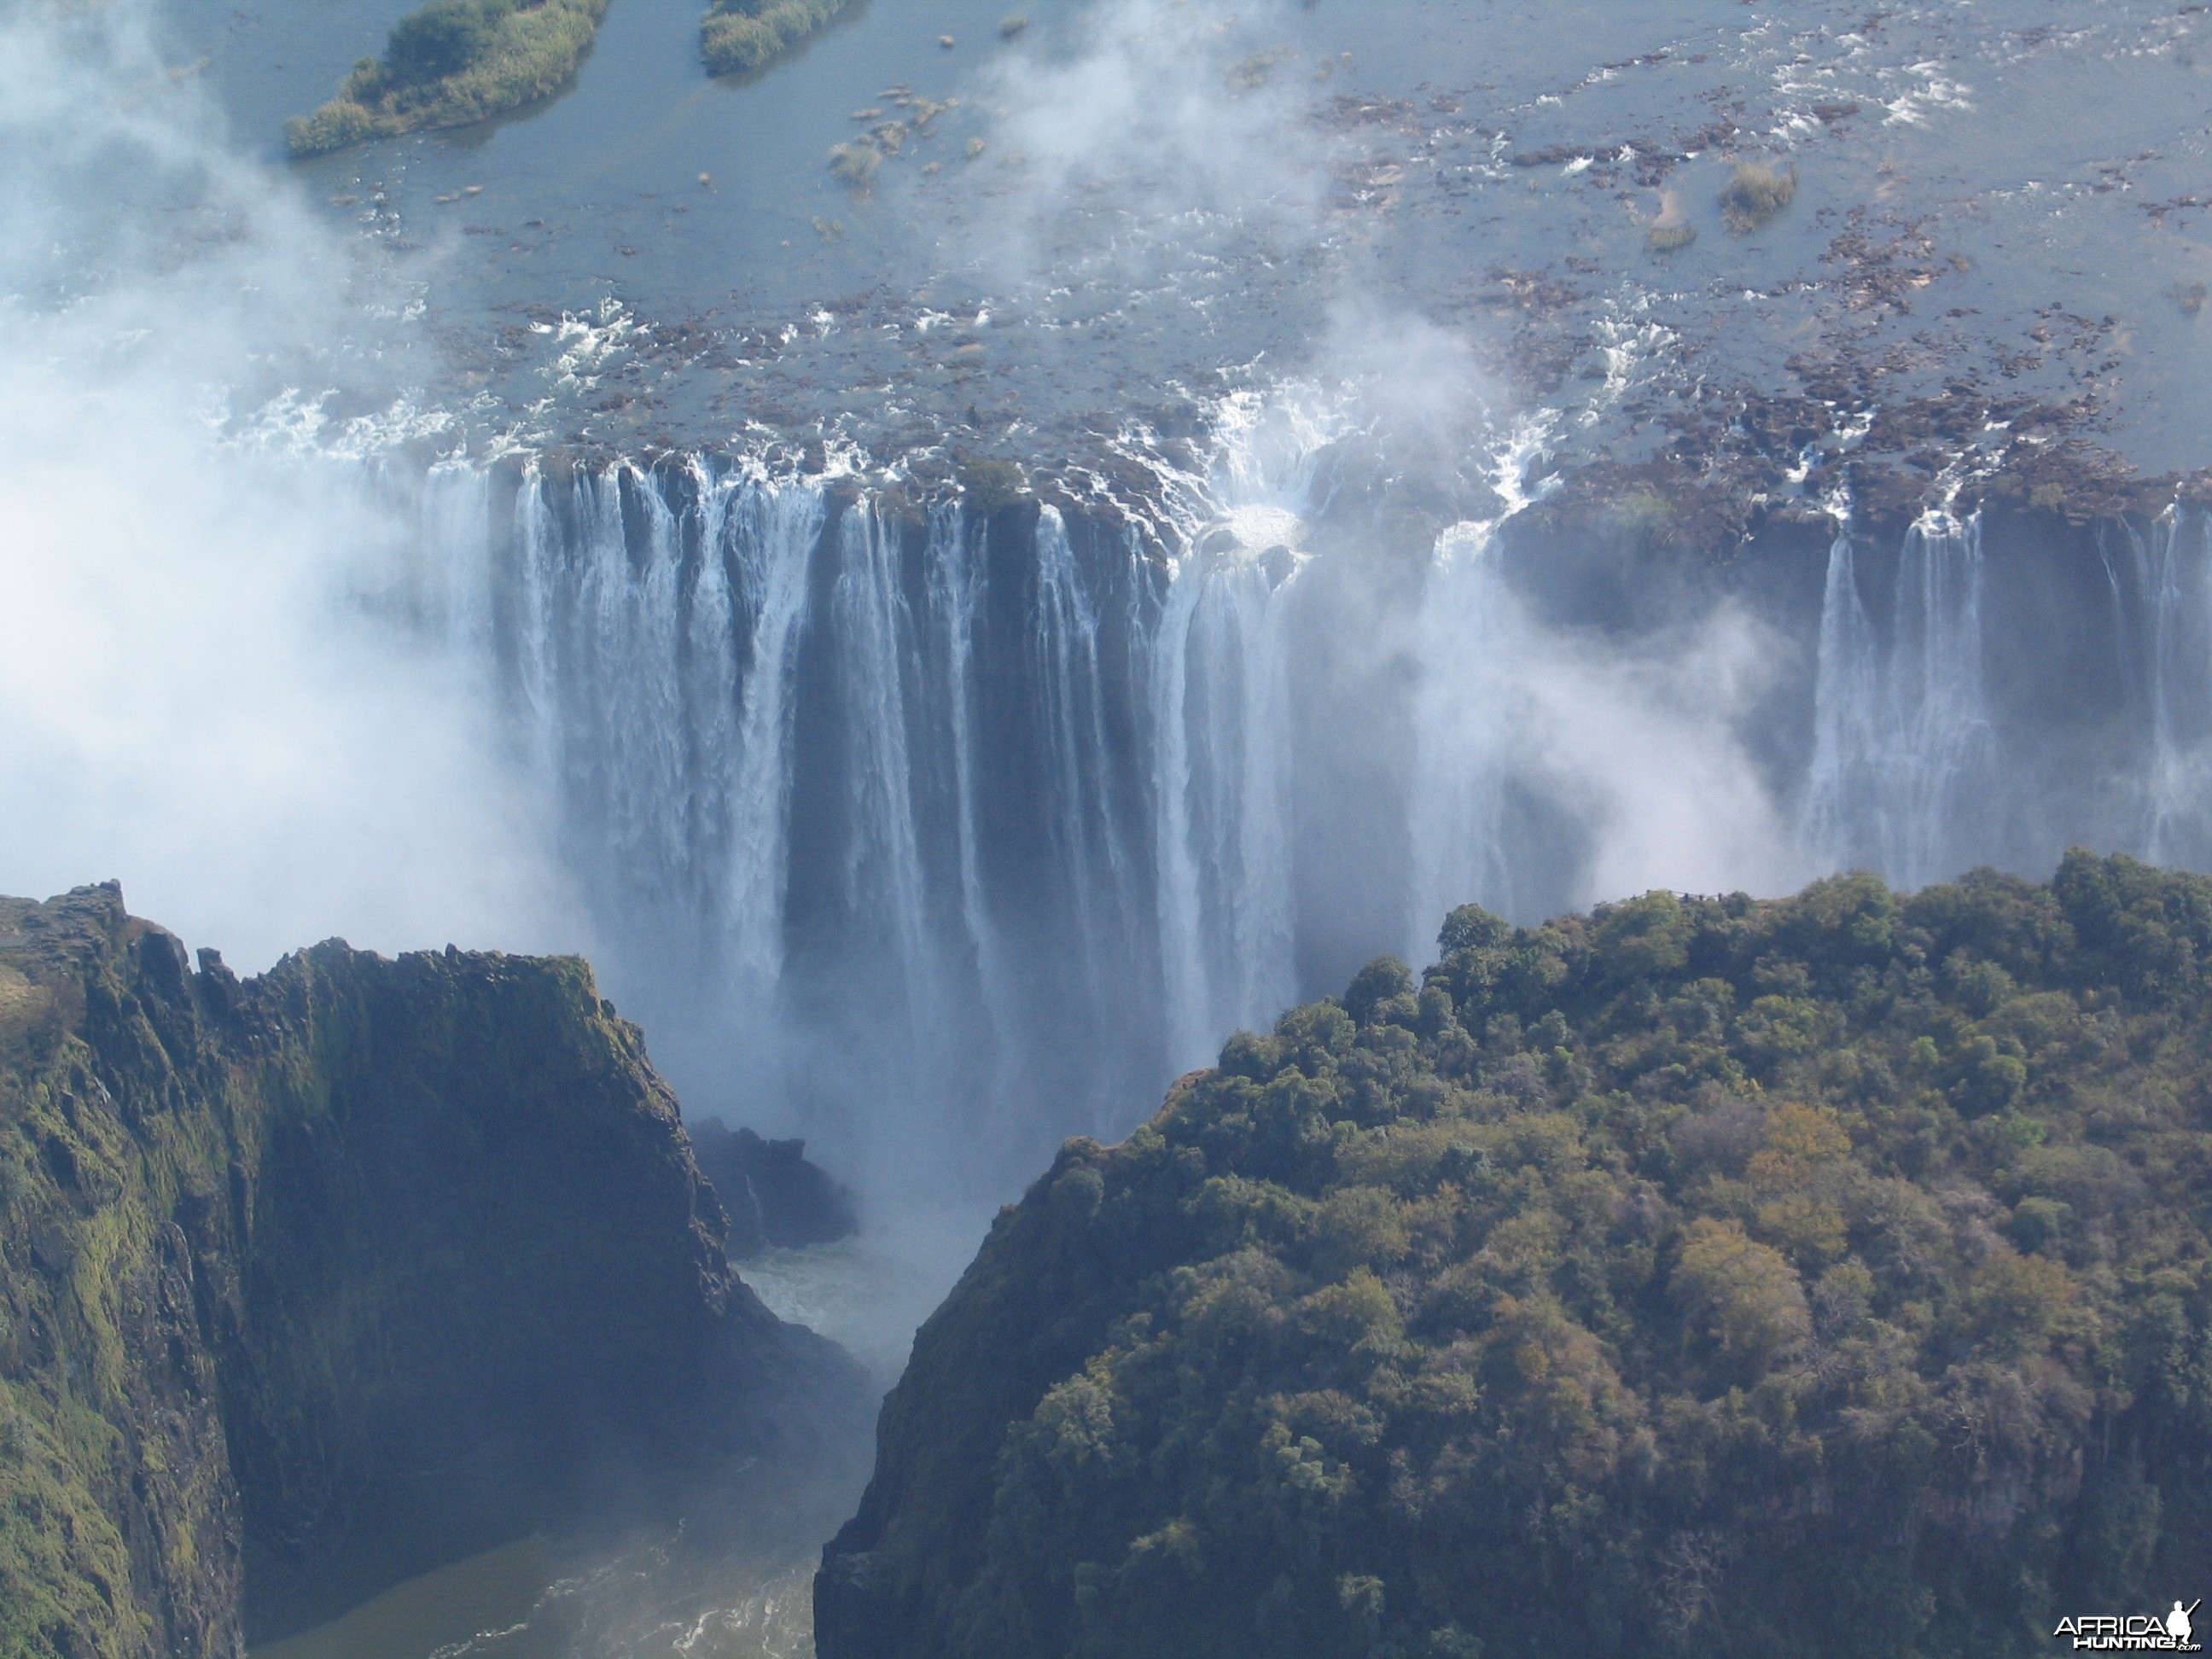 Victoria falls 2009 (Helicopter view)